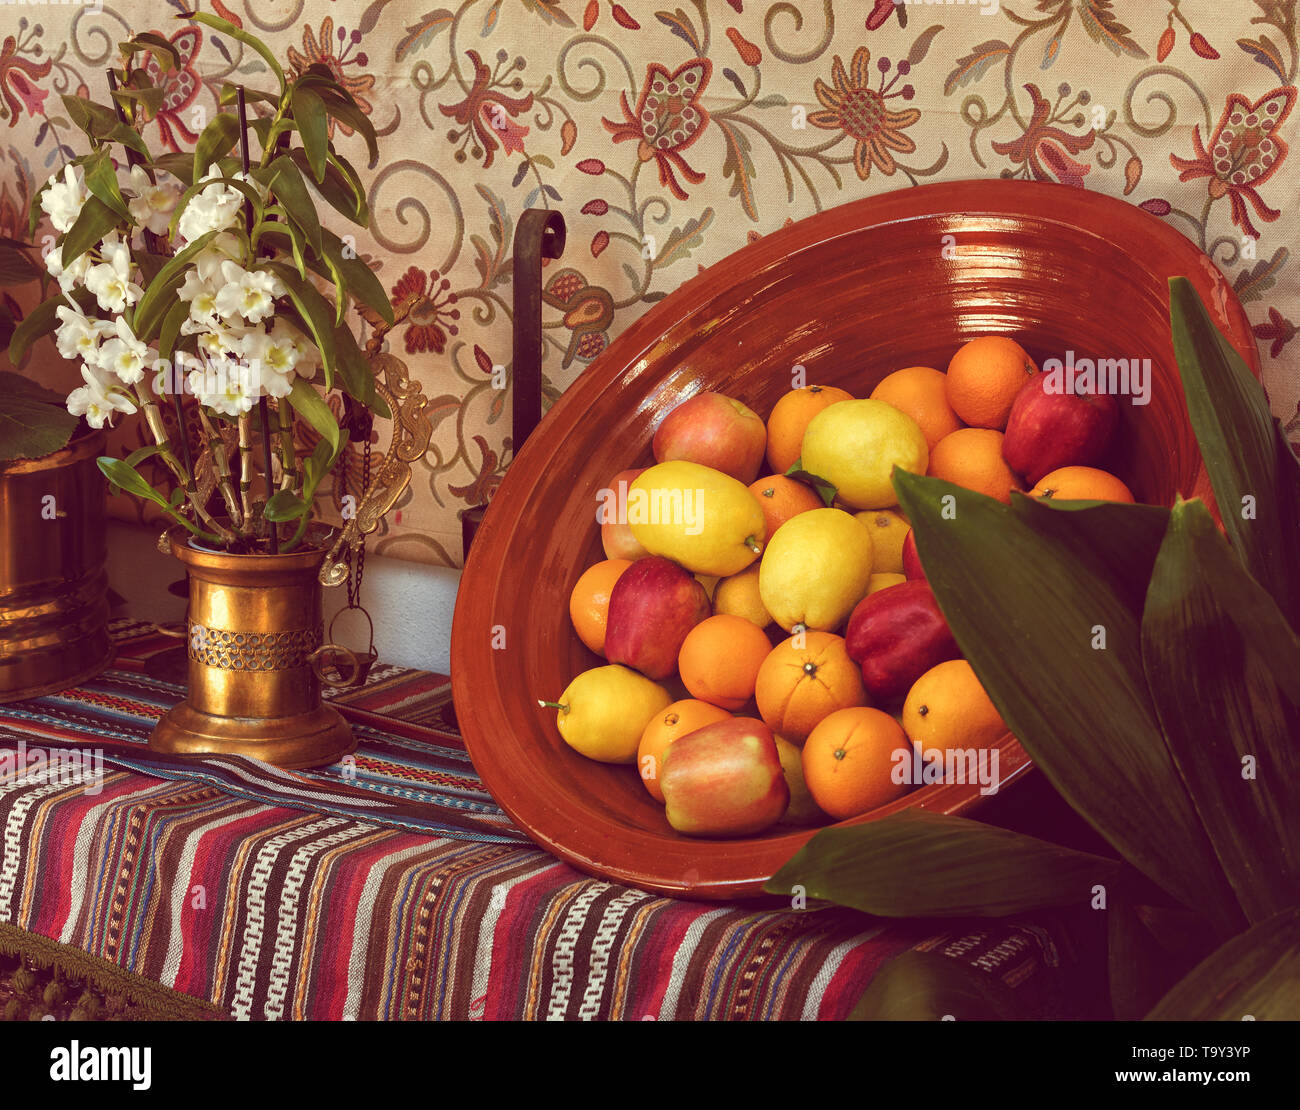 Oranges, apples and lemons in a clay bowl next to a vase with flowers. - Stock Image